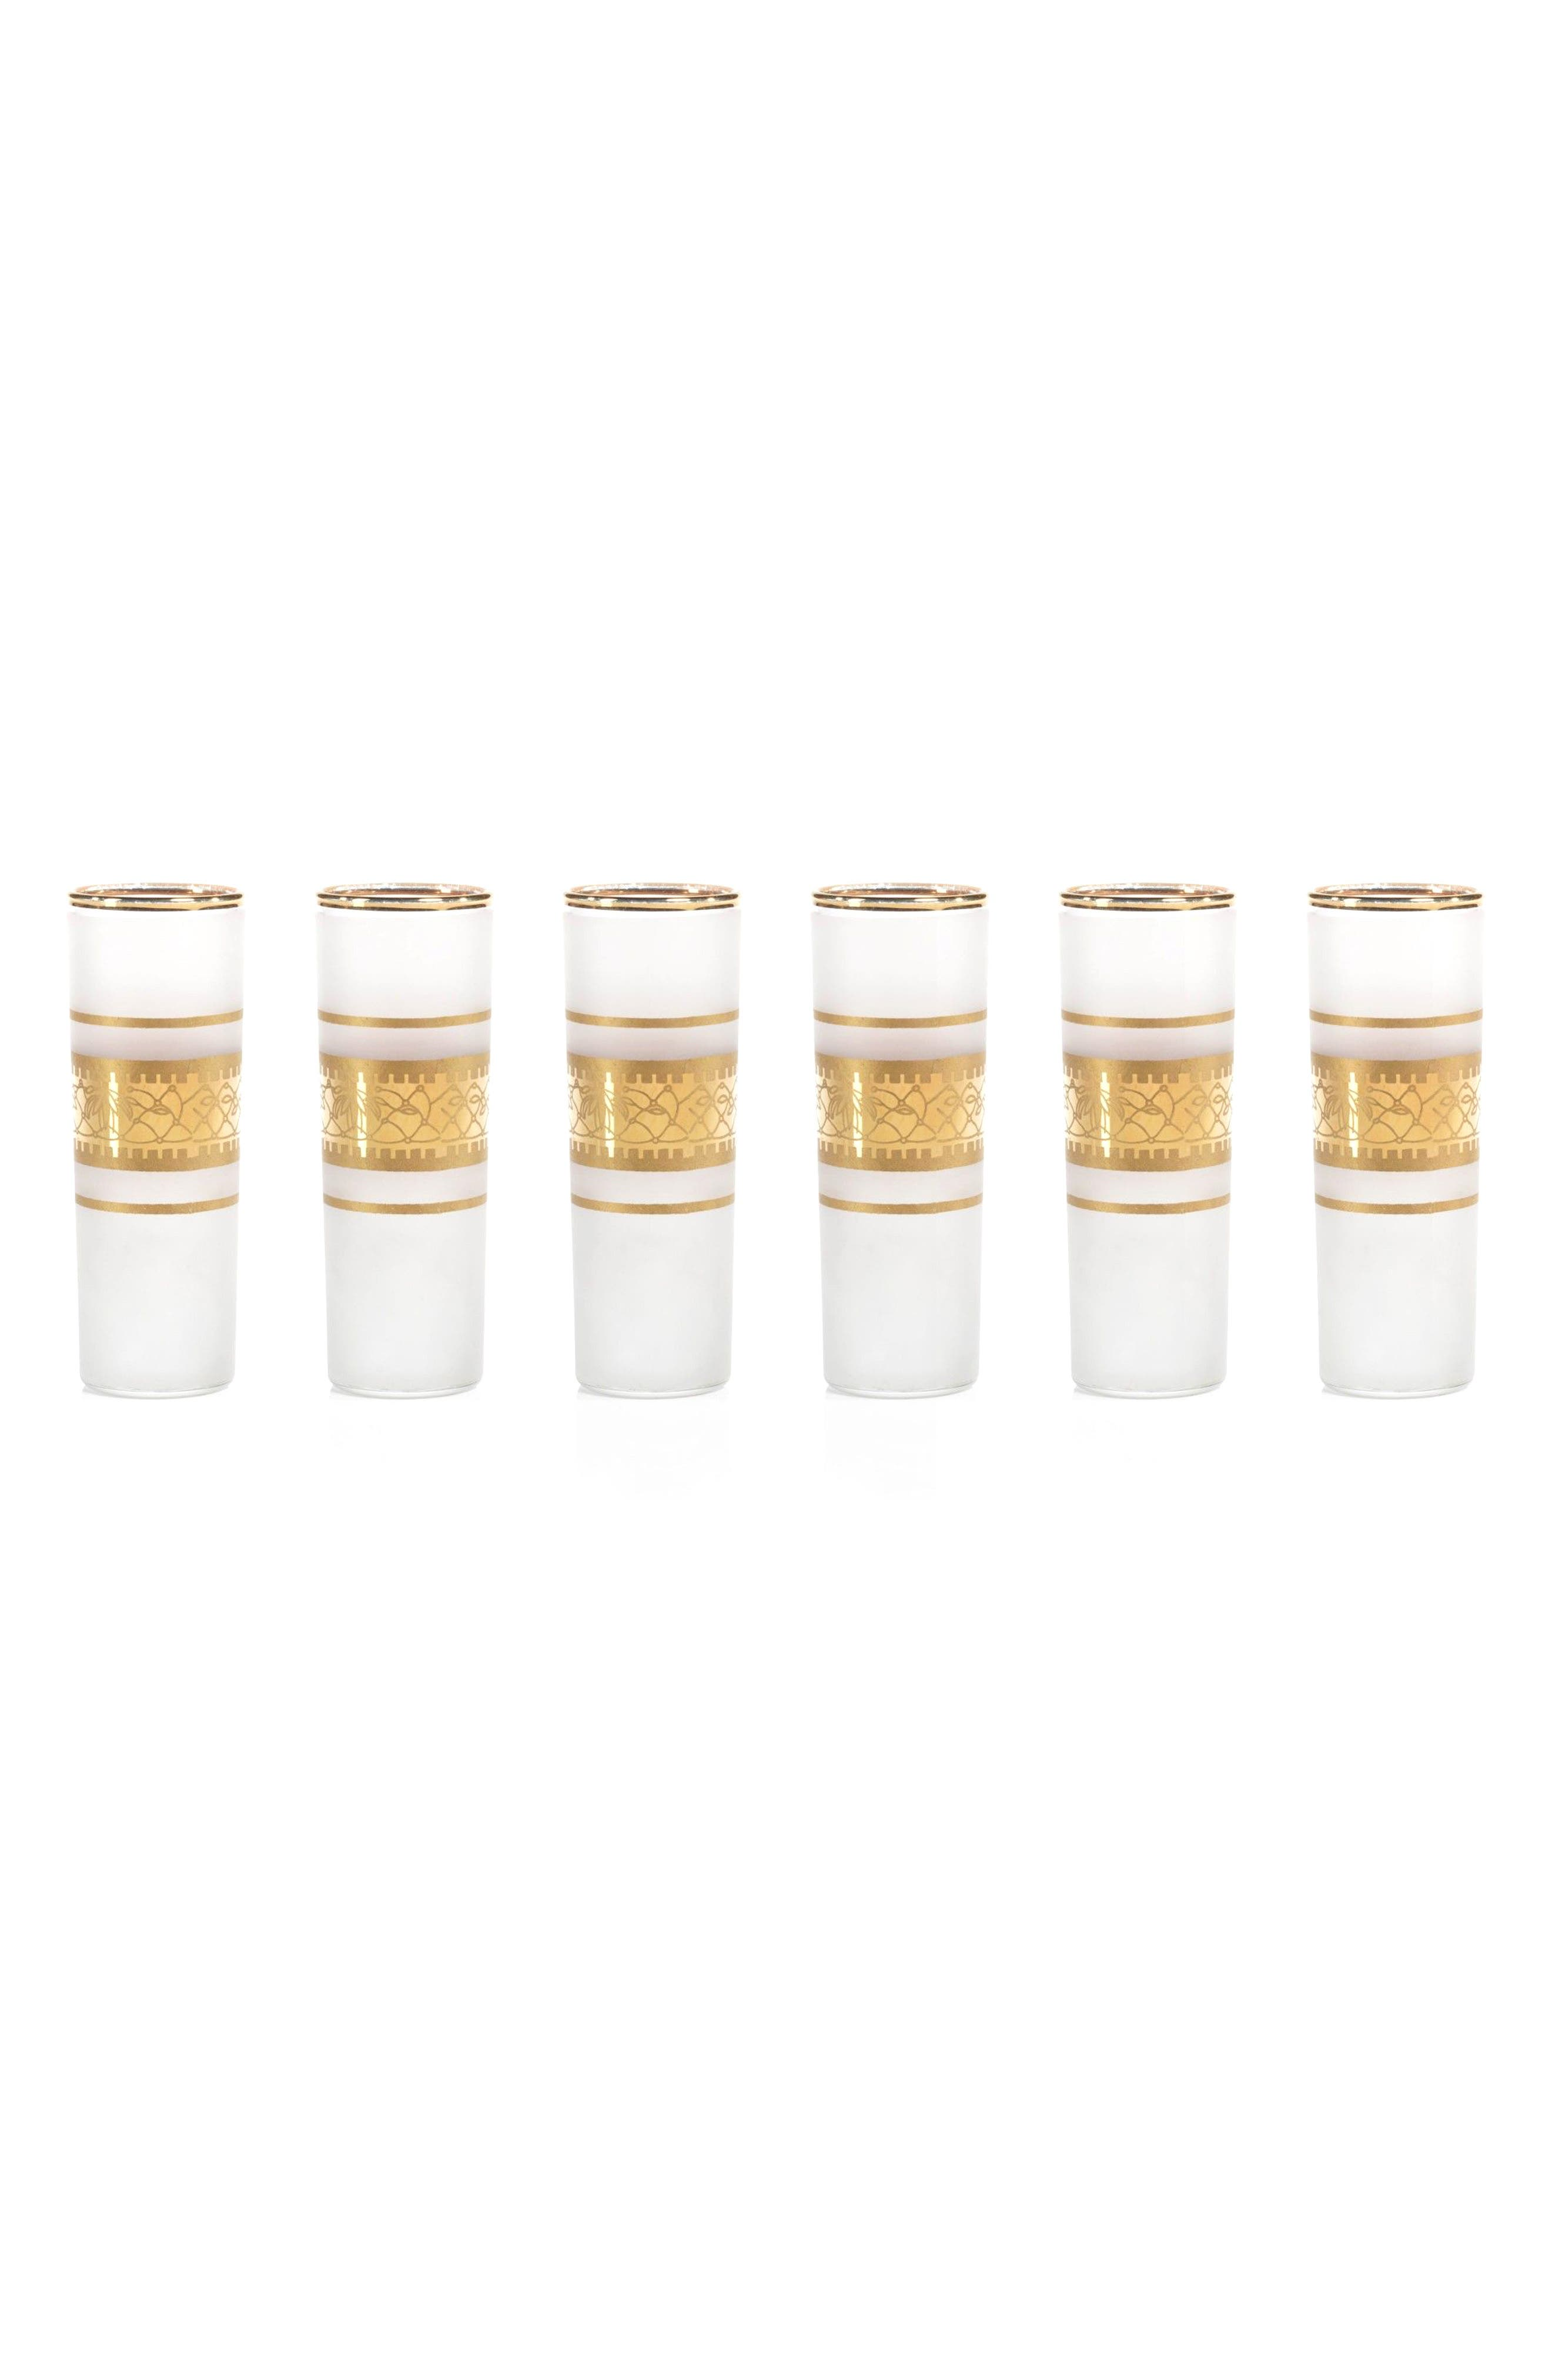 Zodax Melilla Set of 6 Shot Glasses